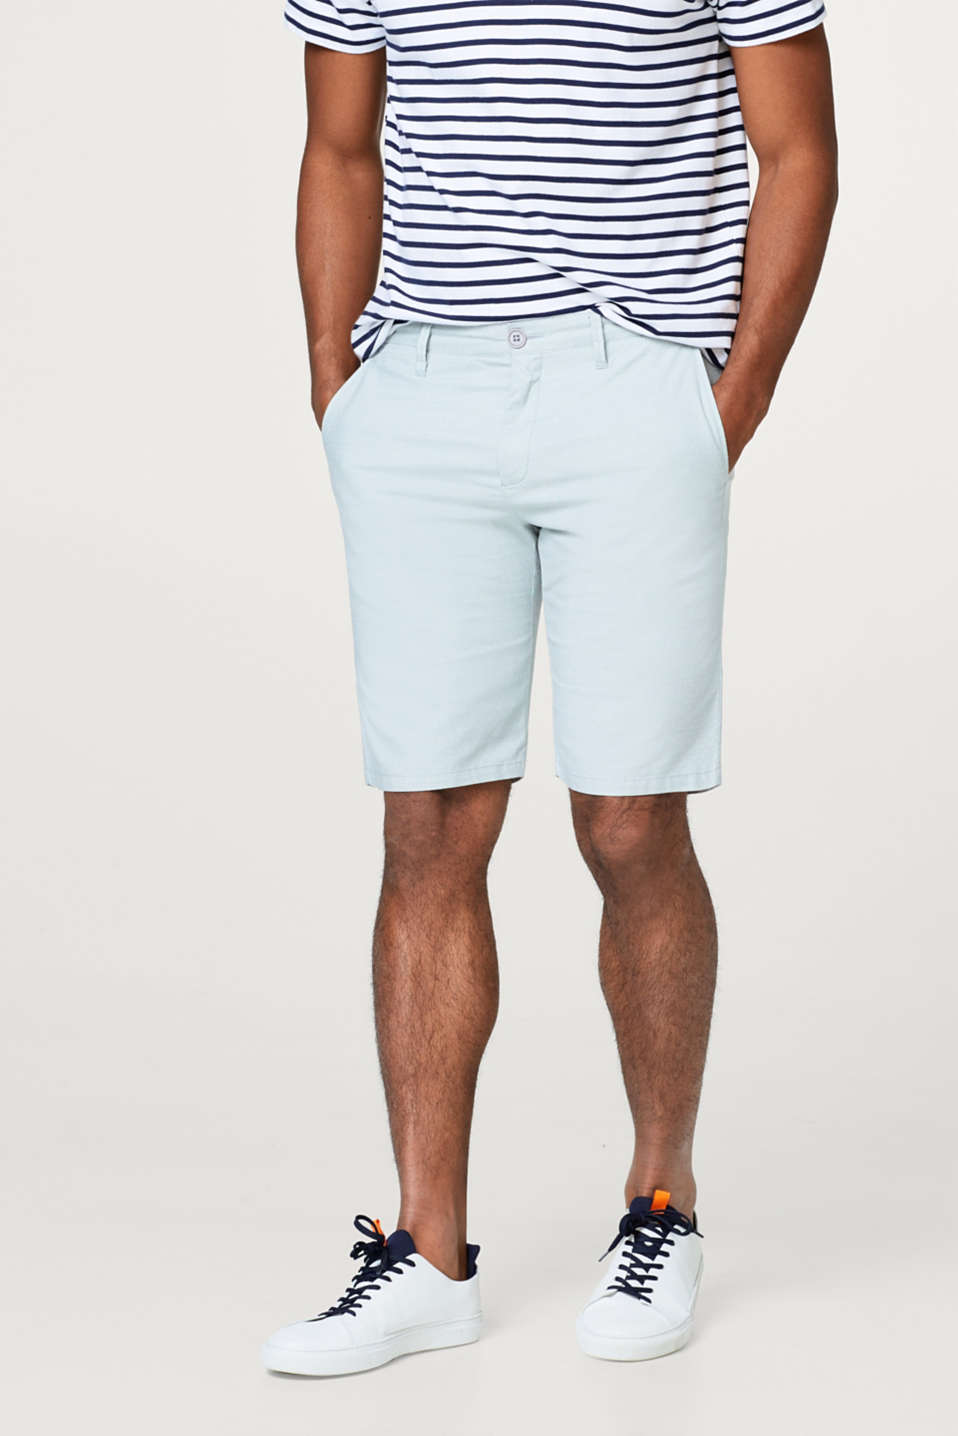 Esprit - Chino shorts with a fine polka dot pattern